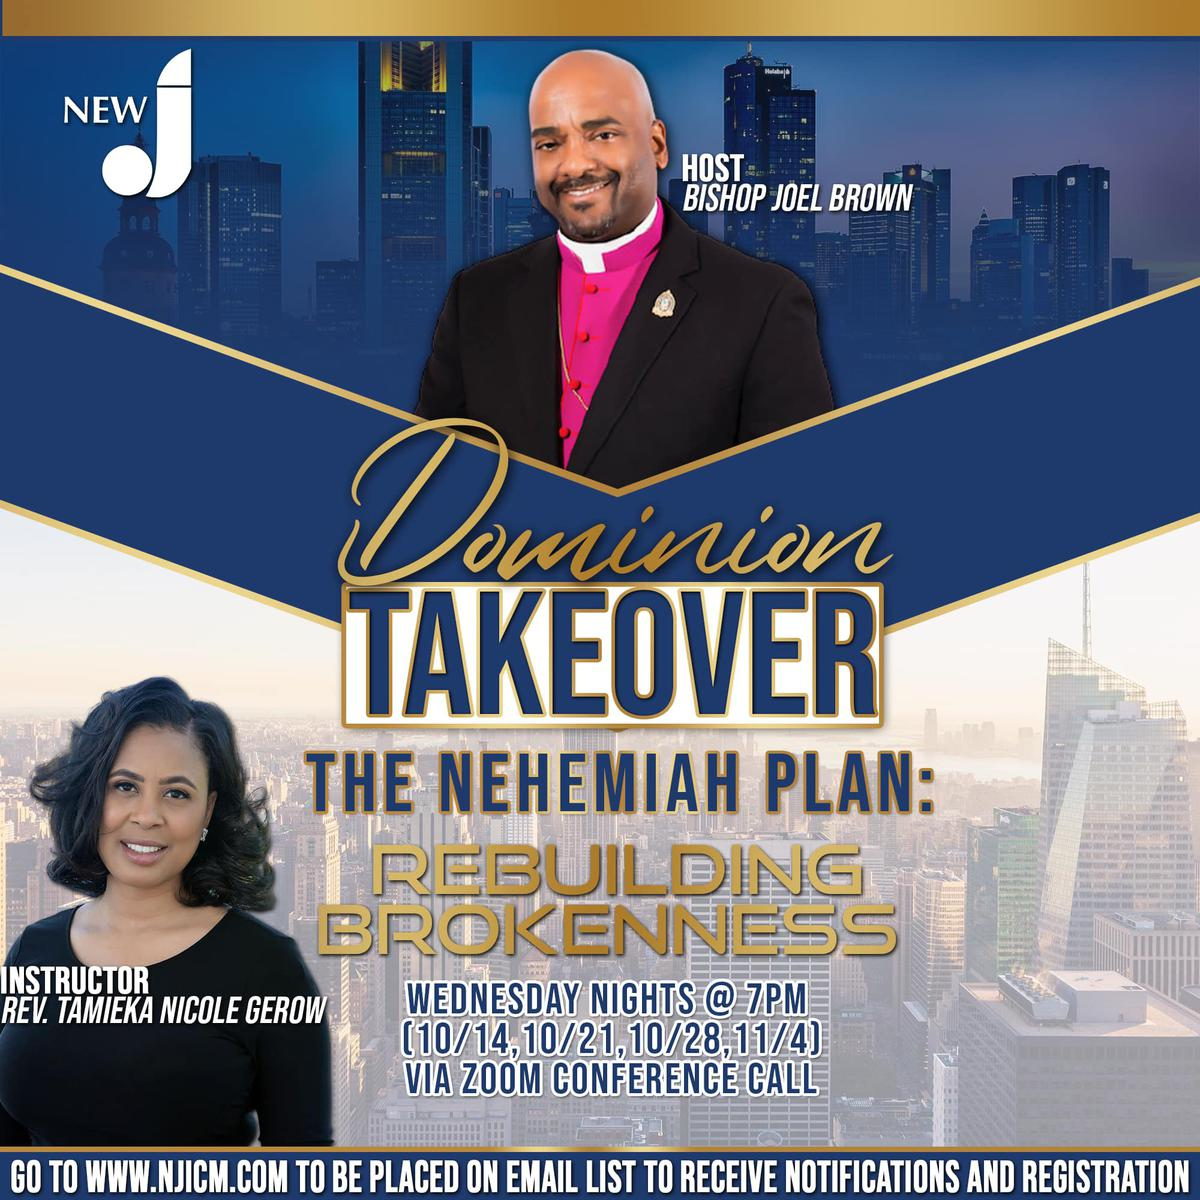 The Nehemiah Plan: REBUILDING BROKENNESS